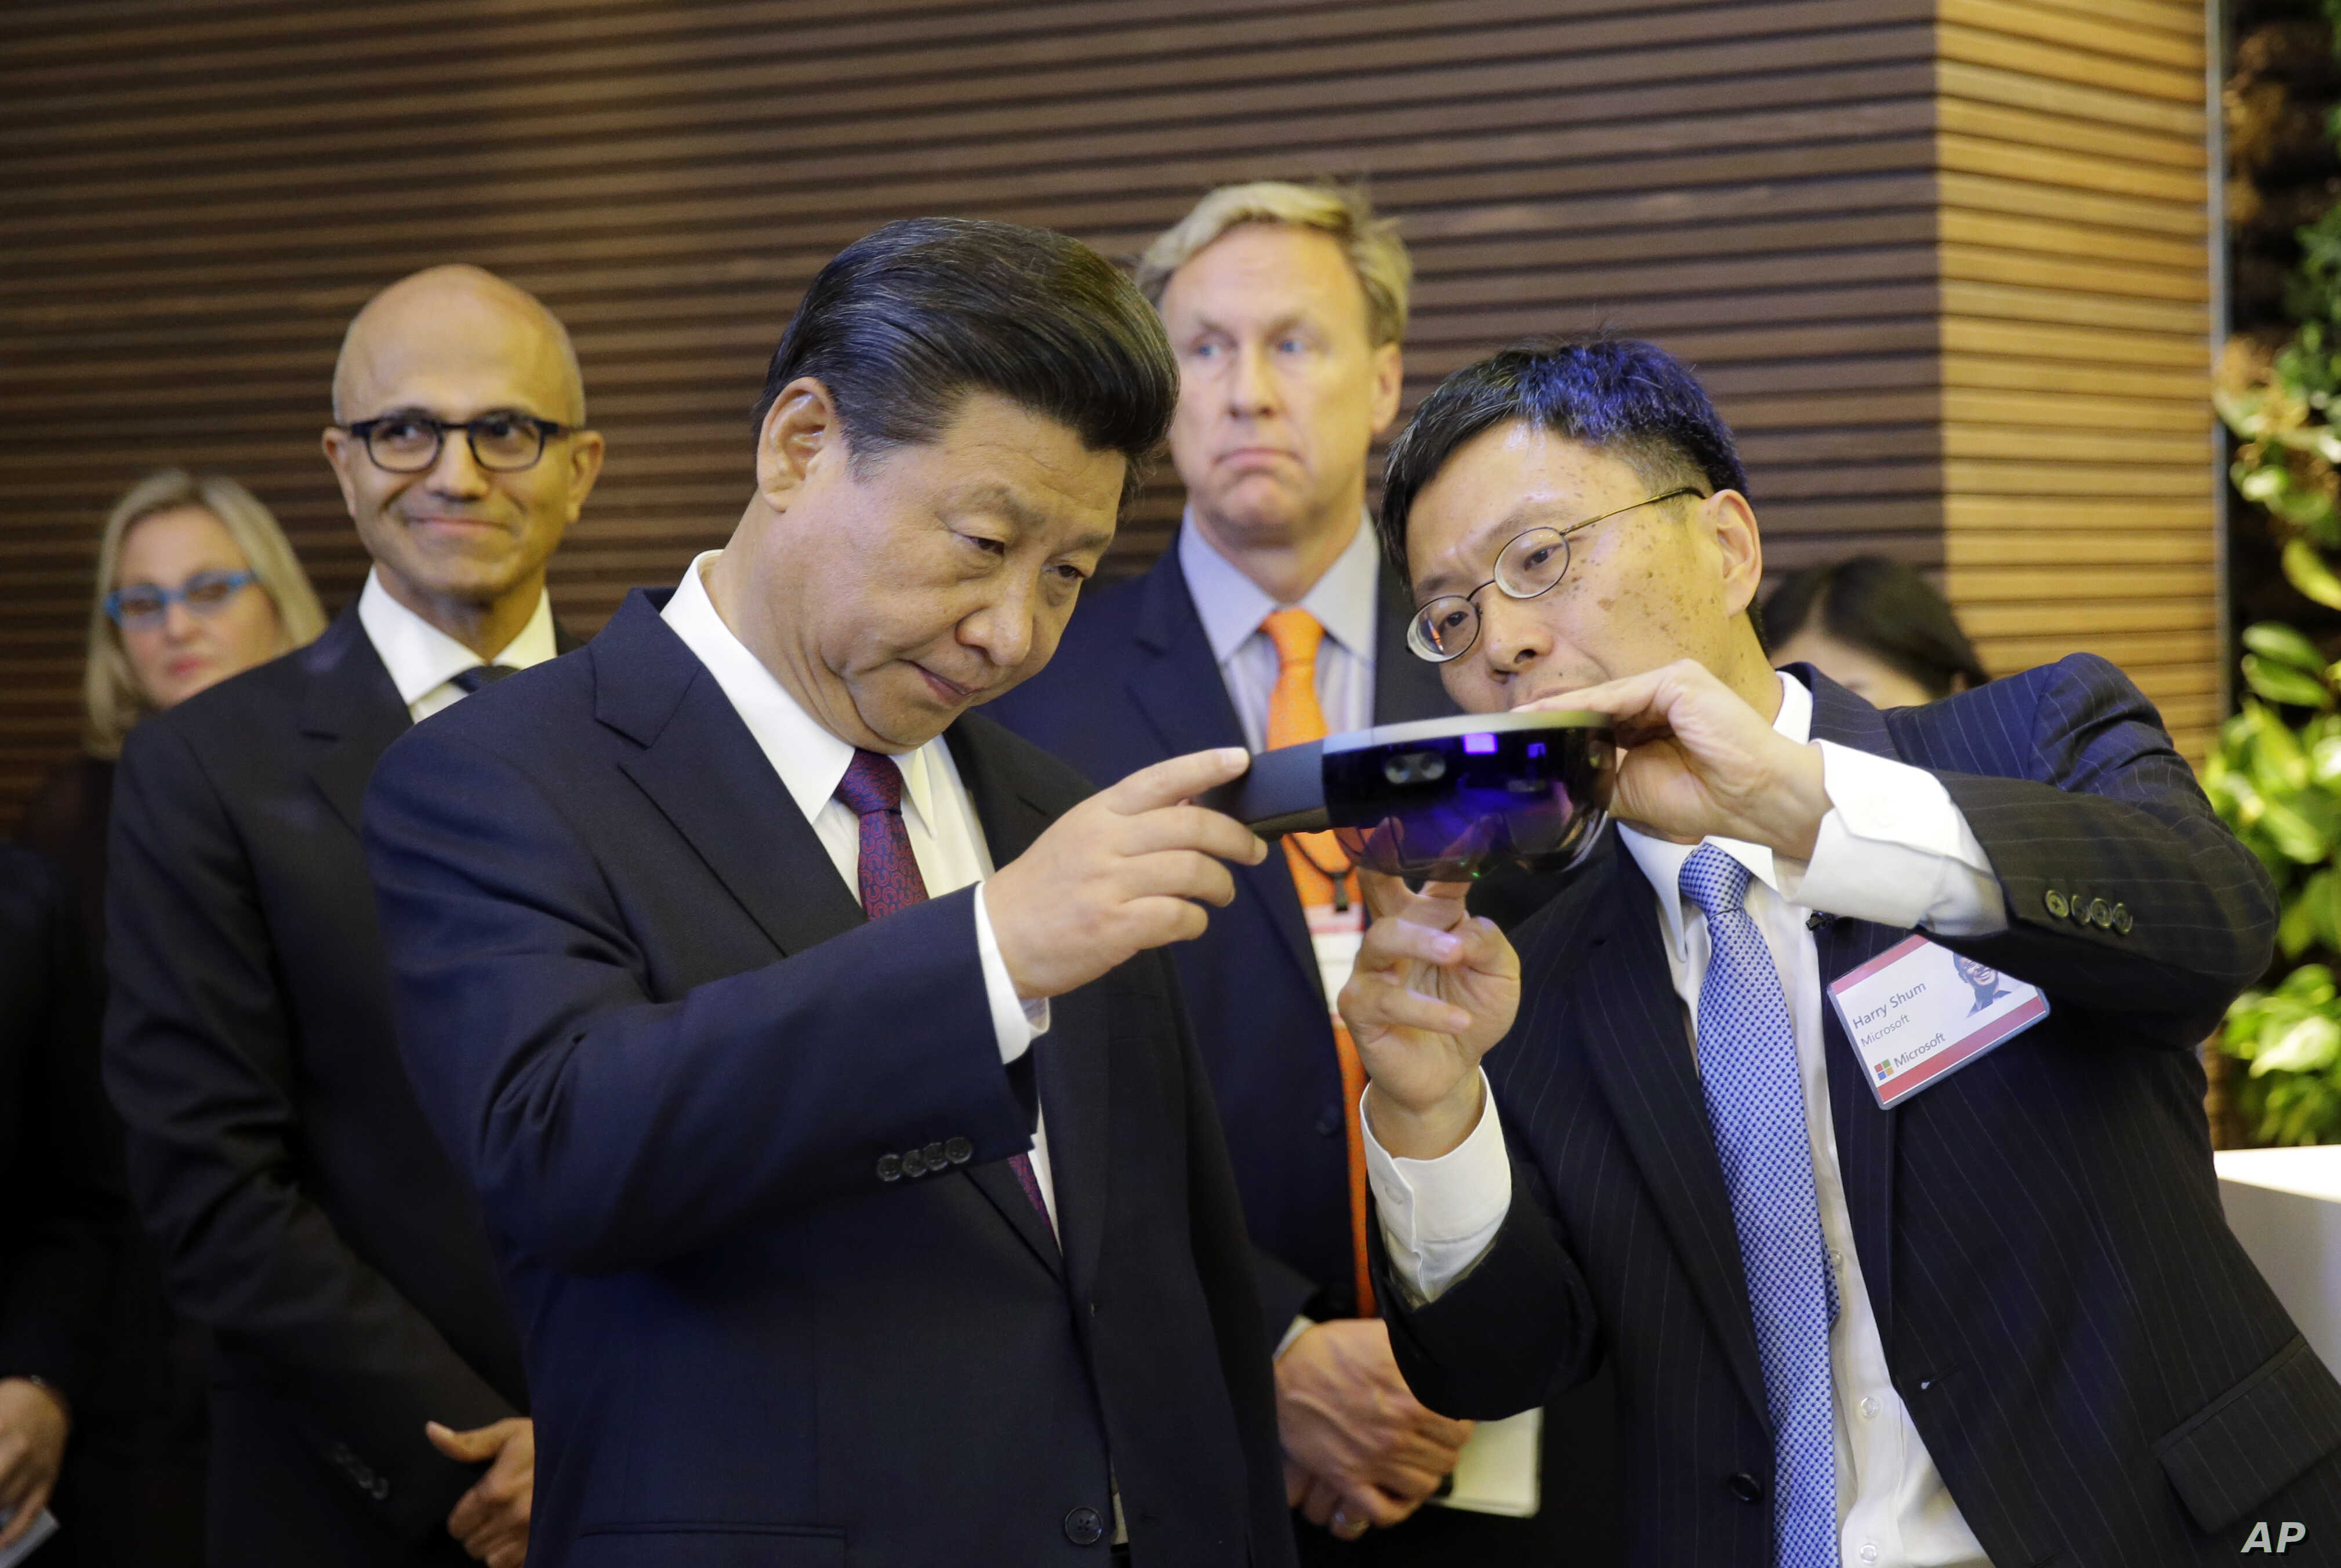 Harry Shum, right, Microsoft Executive Vice President of Technology and Research, demonstrates Micosoft's HoloLens device to Chinese President Xi Jinping, left, during a tour of Microsoft's main campus in Redmond, Wash., Wednesday, Sept. 23, 2015.